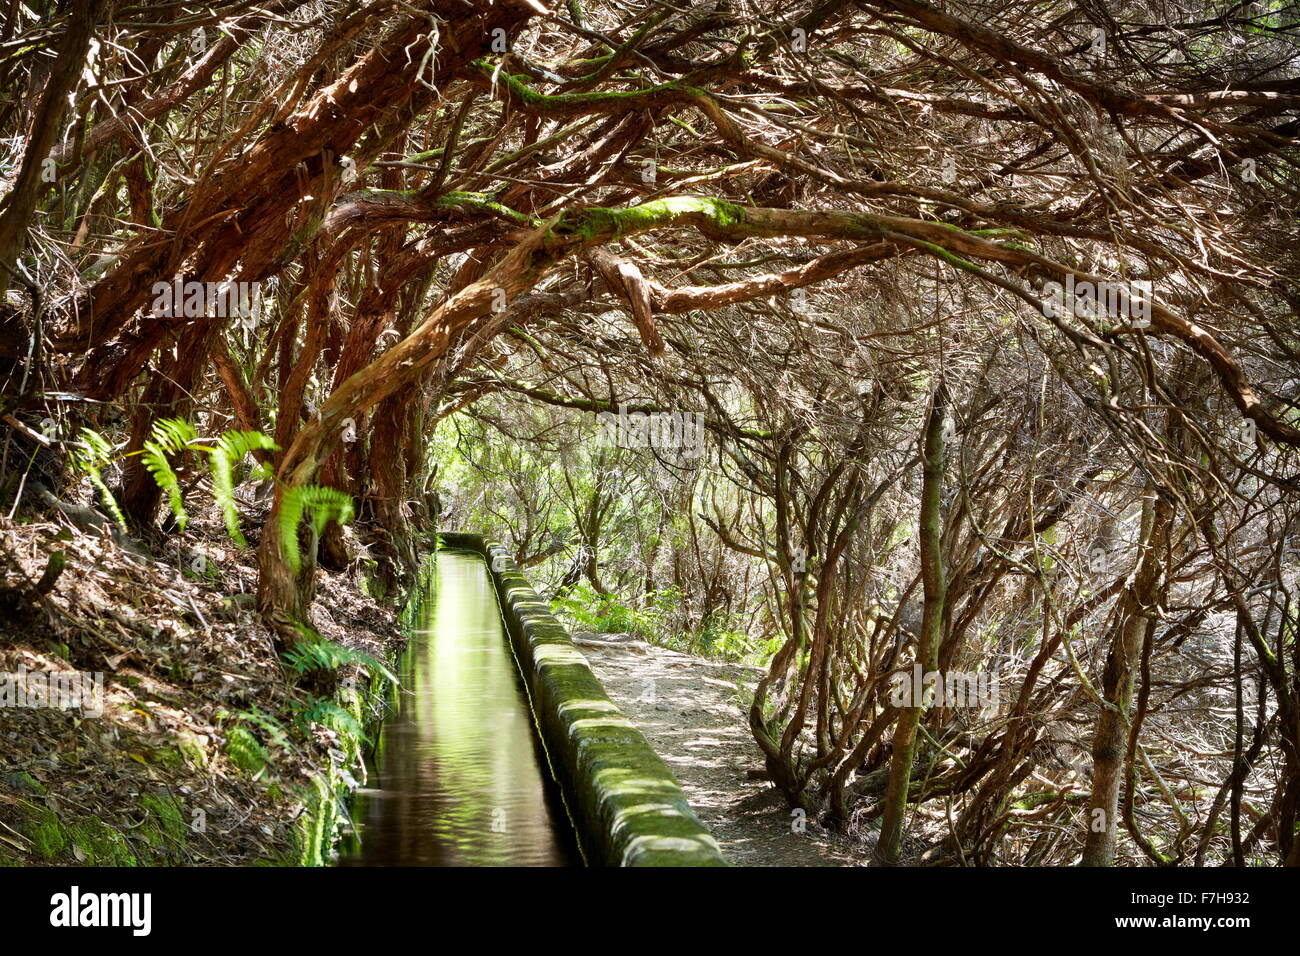 Levada das 25 Fontes, laurel forest and irrigation canal, Rabacal, Madeira Island, Portugal - Stock Image